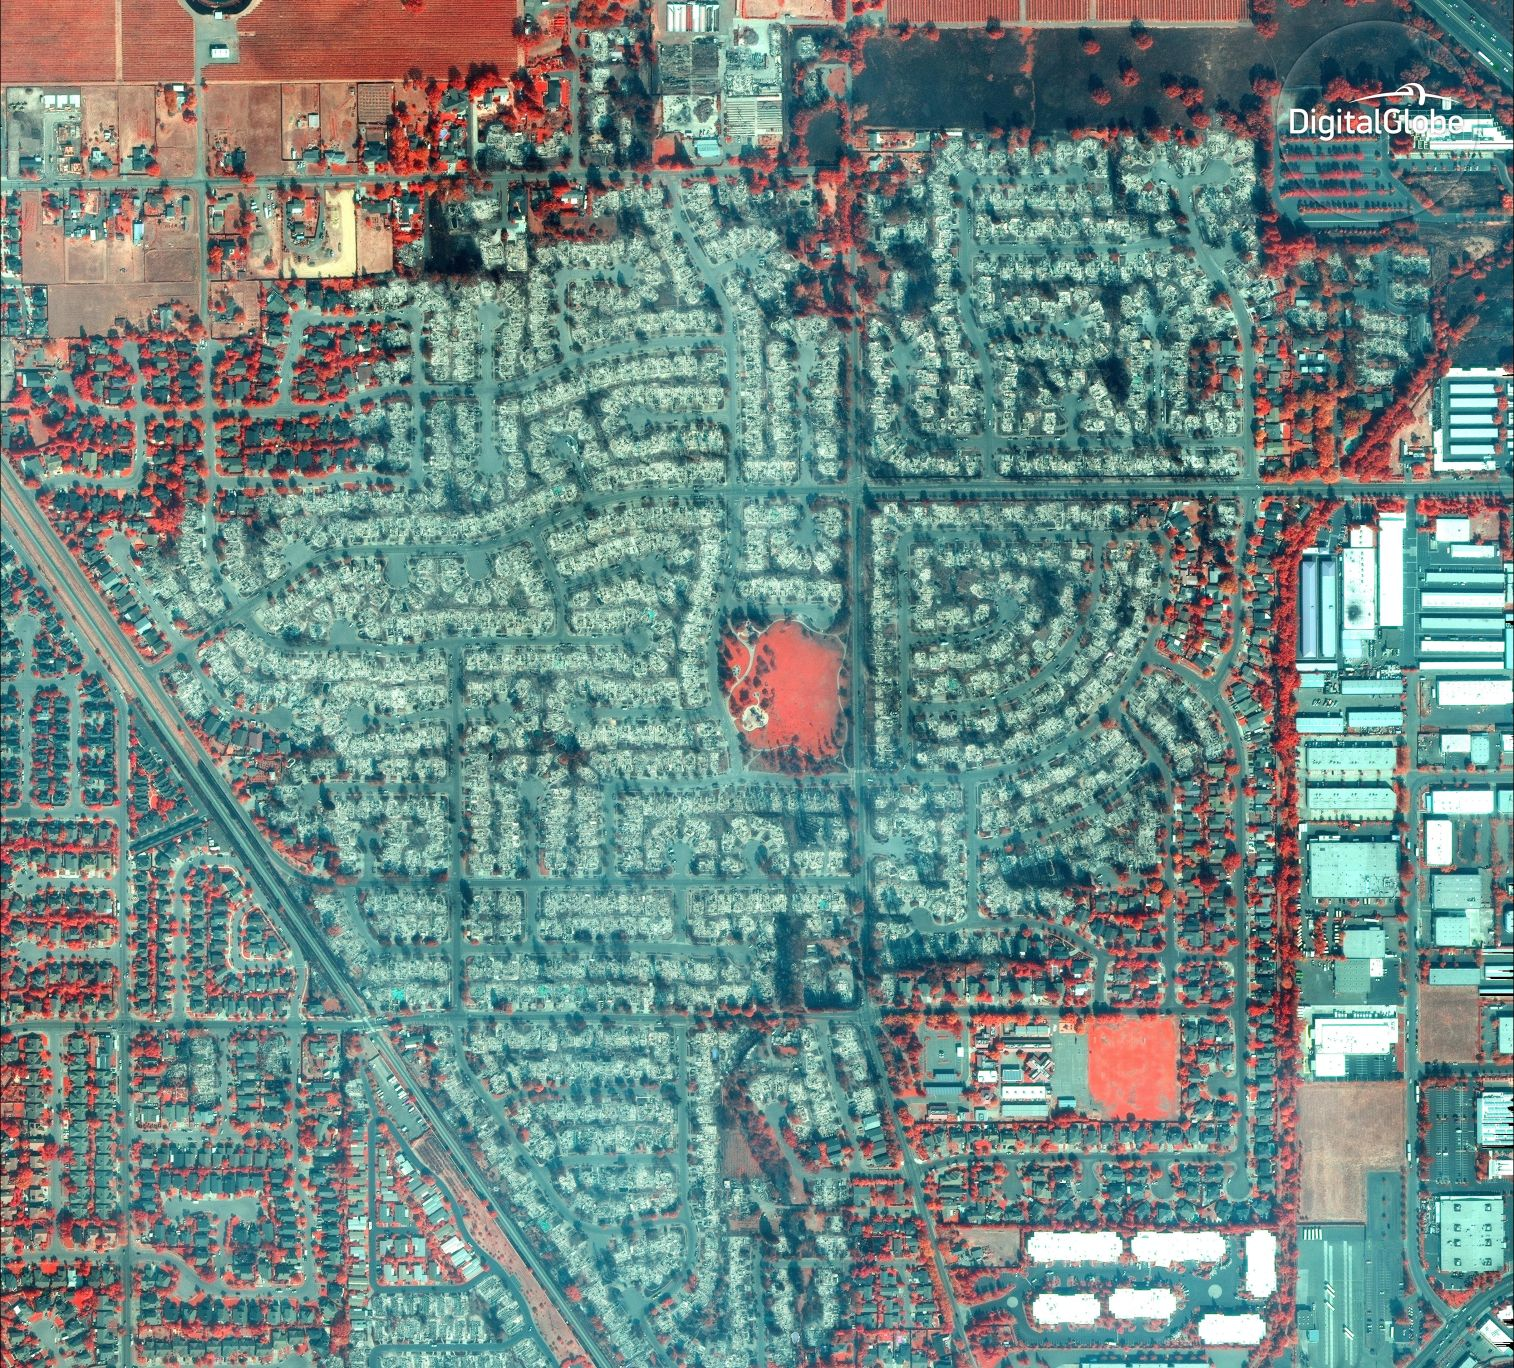 San Jose Calif Map%0A Photos  Winds whip new terror into deadly California wildfires   National    host madison com